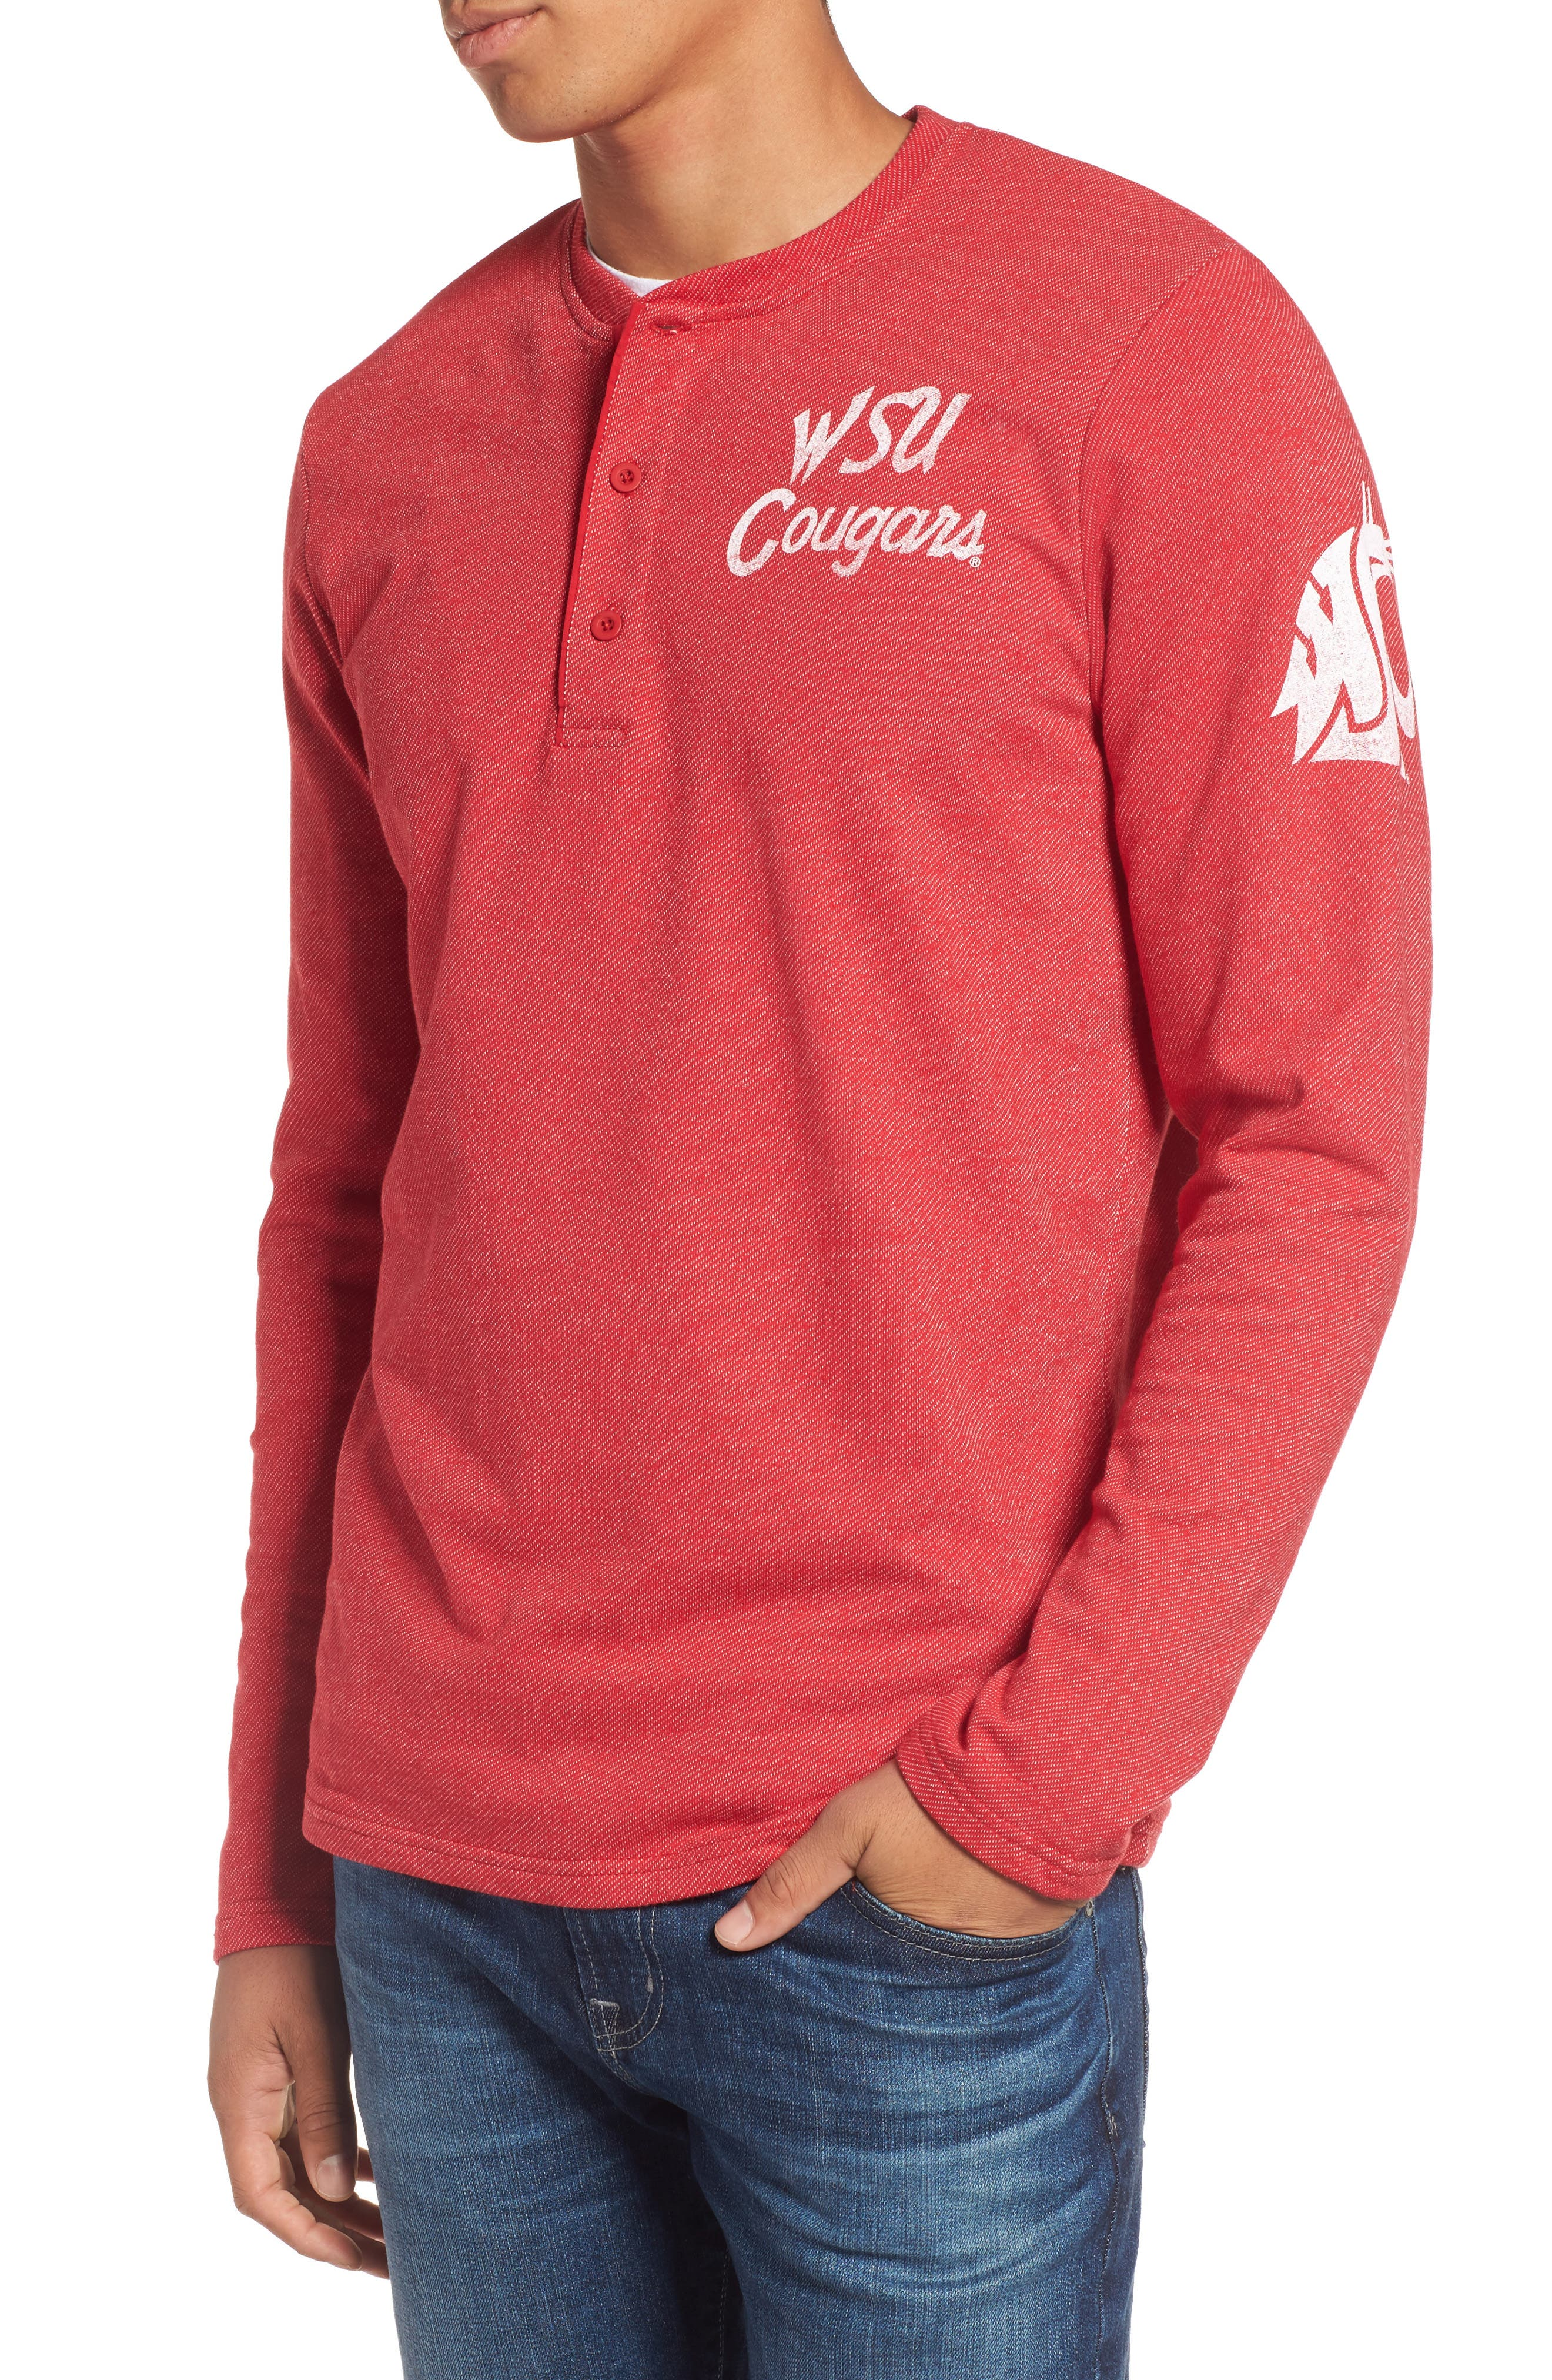 Main Image - '47 Washington State University Cougars Henley